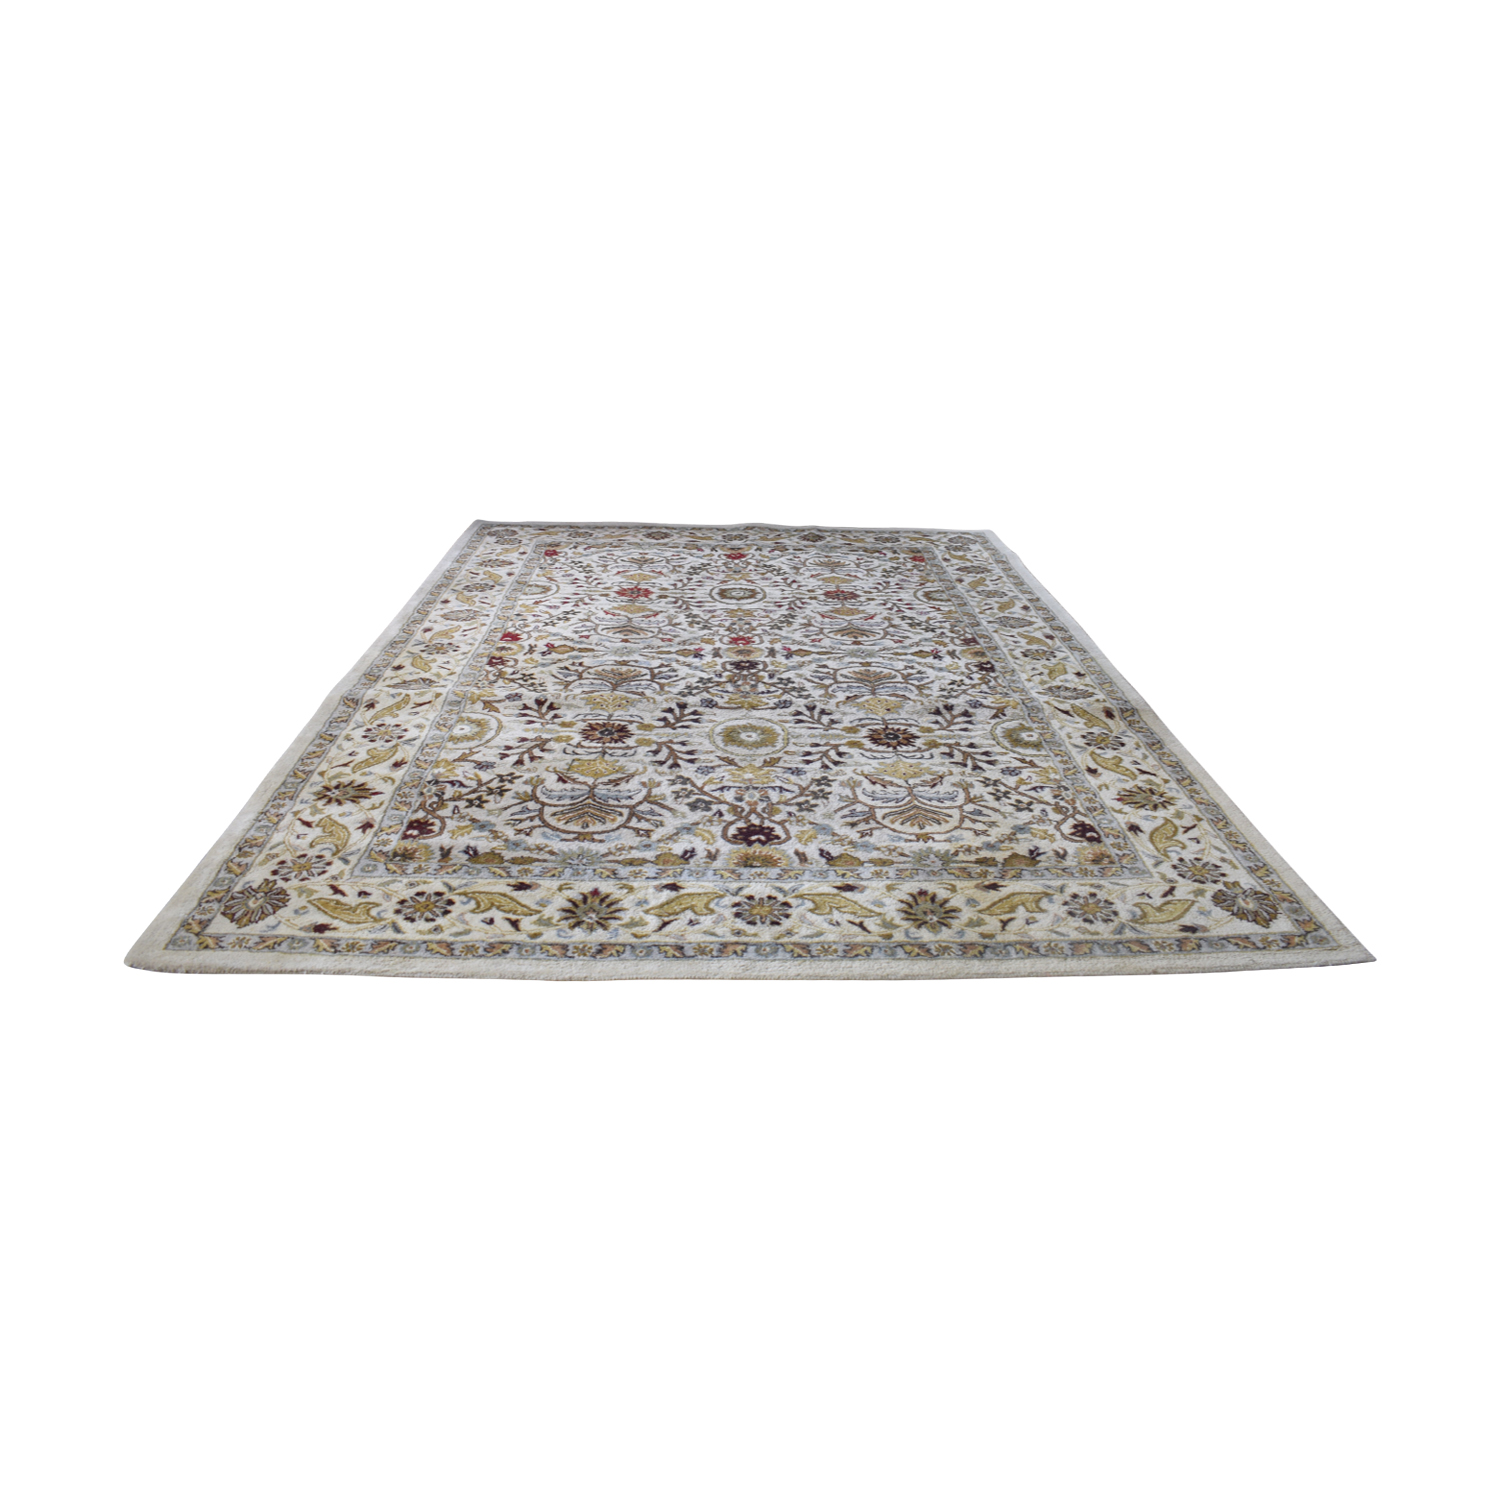 buy Home Decorators Collection Home Decorators Collection Beige Wool Rug online